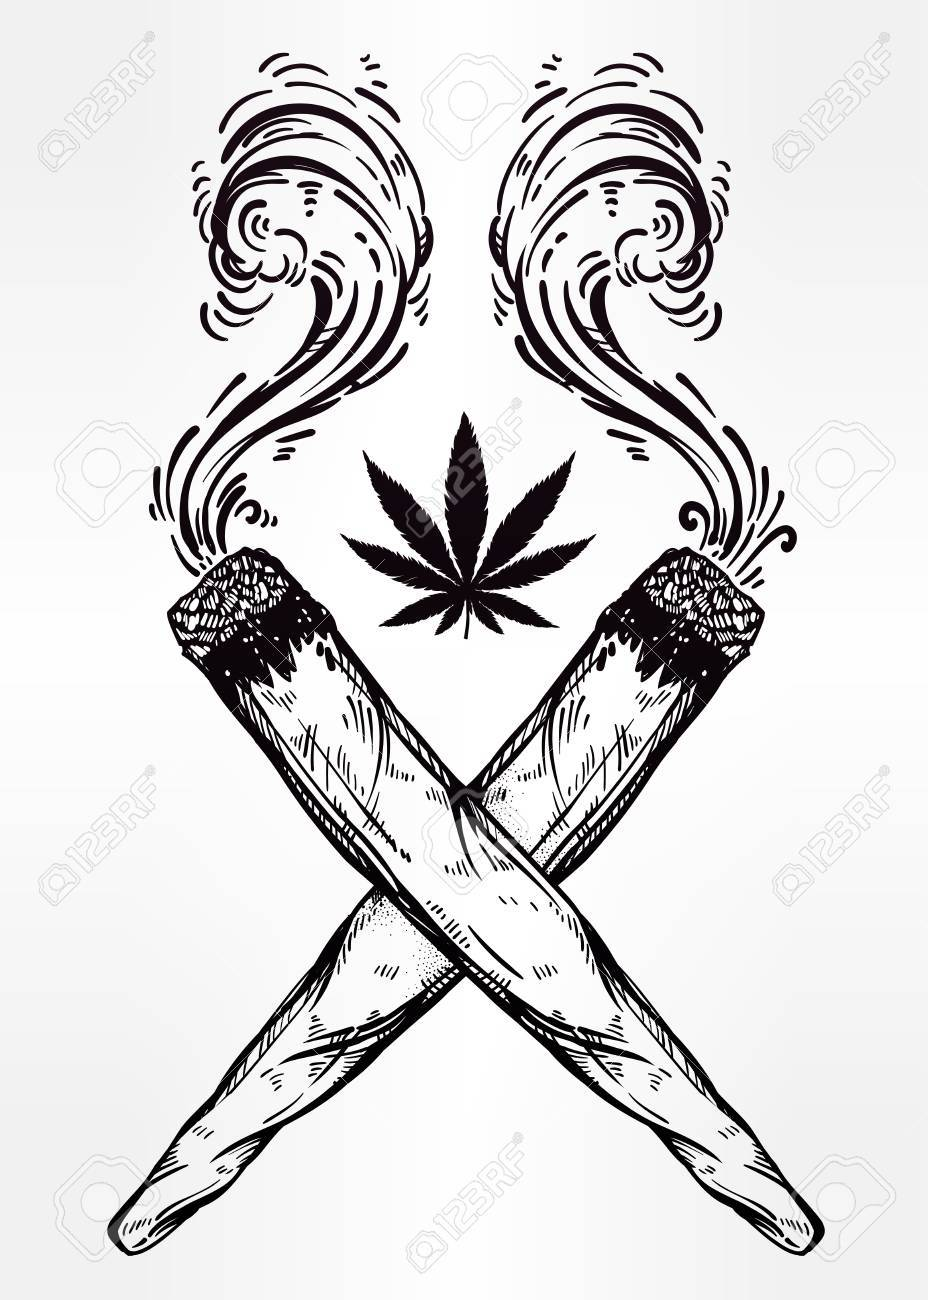 weed joint drawing at getdrawings com free for personal use weed